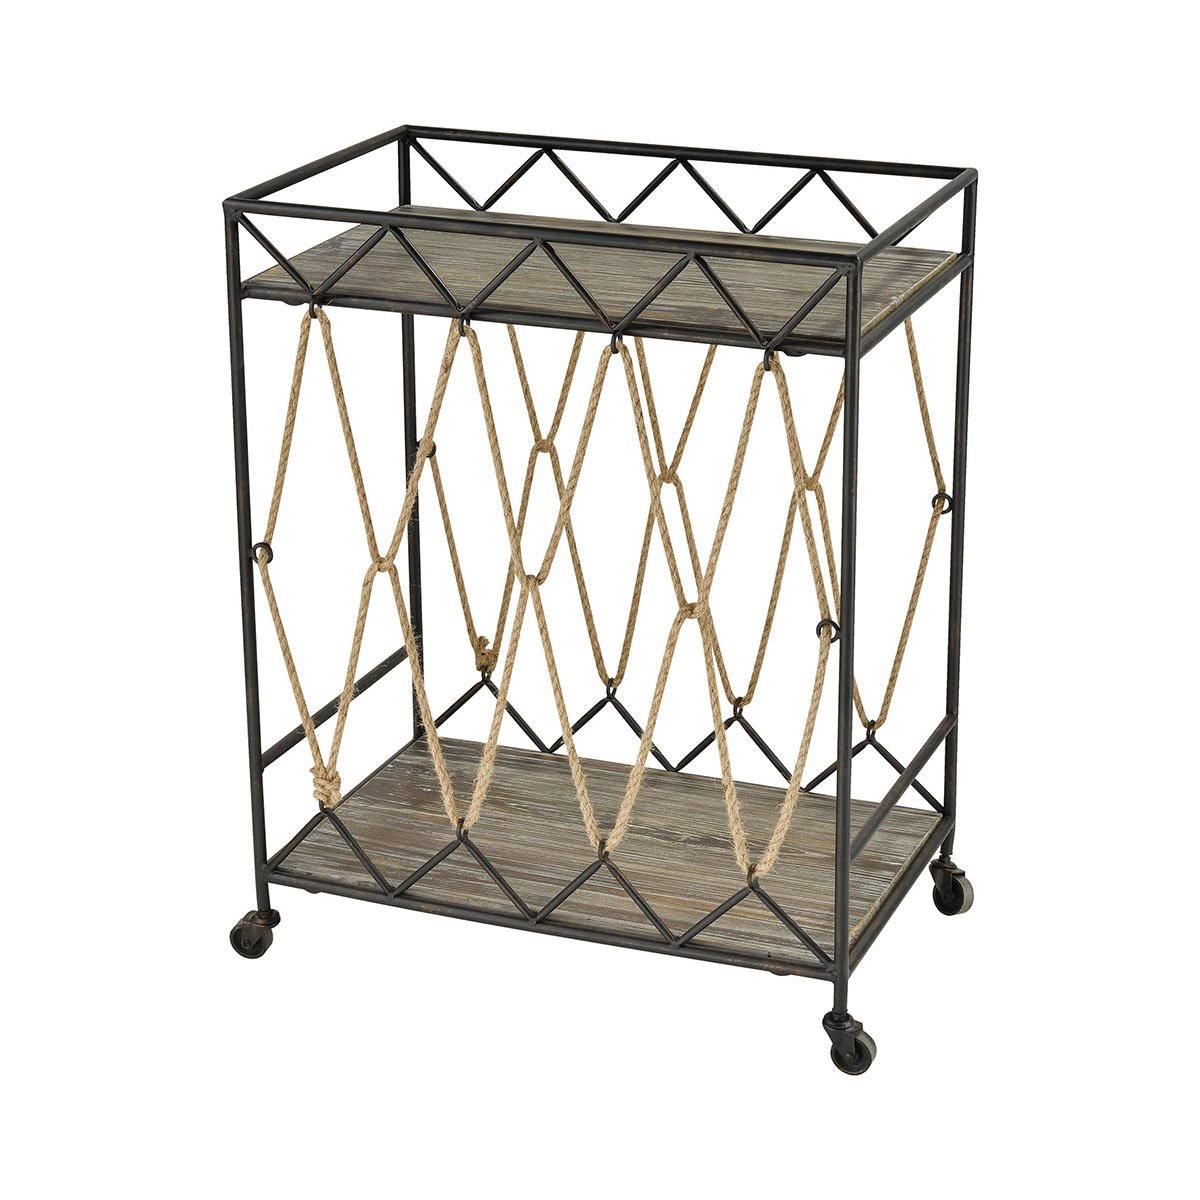 Contemporary Home Living 30.25'' Brown Rectangular Geometric Roadshow Cart by Contemporary Home Living